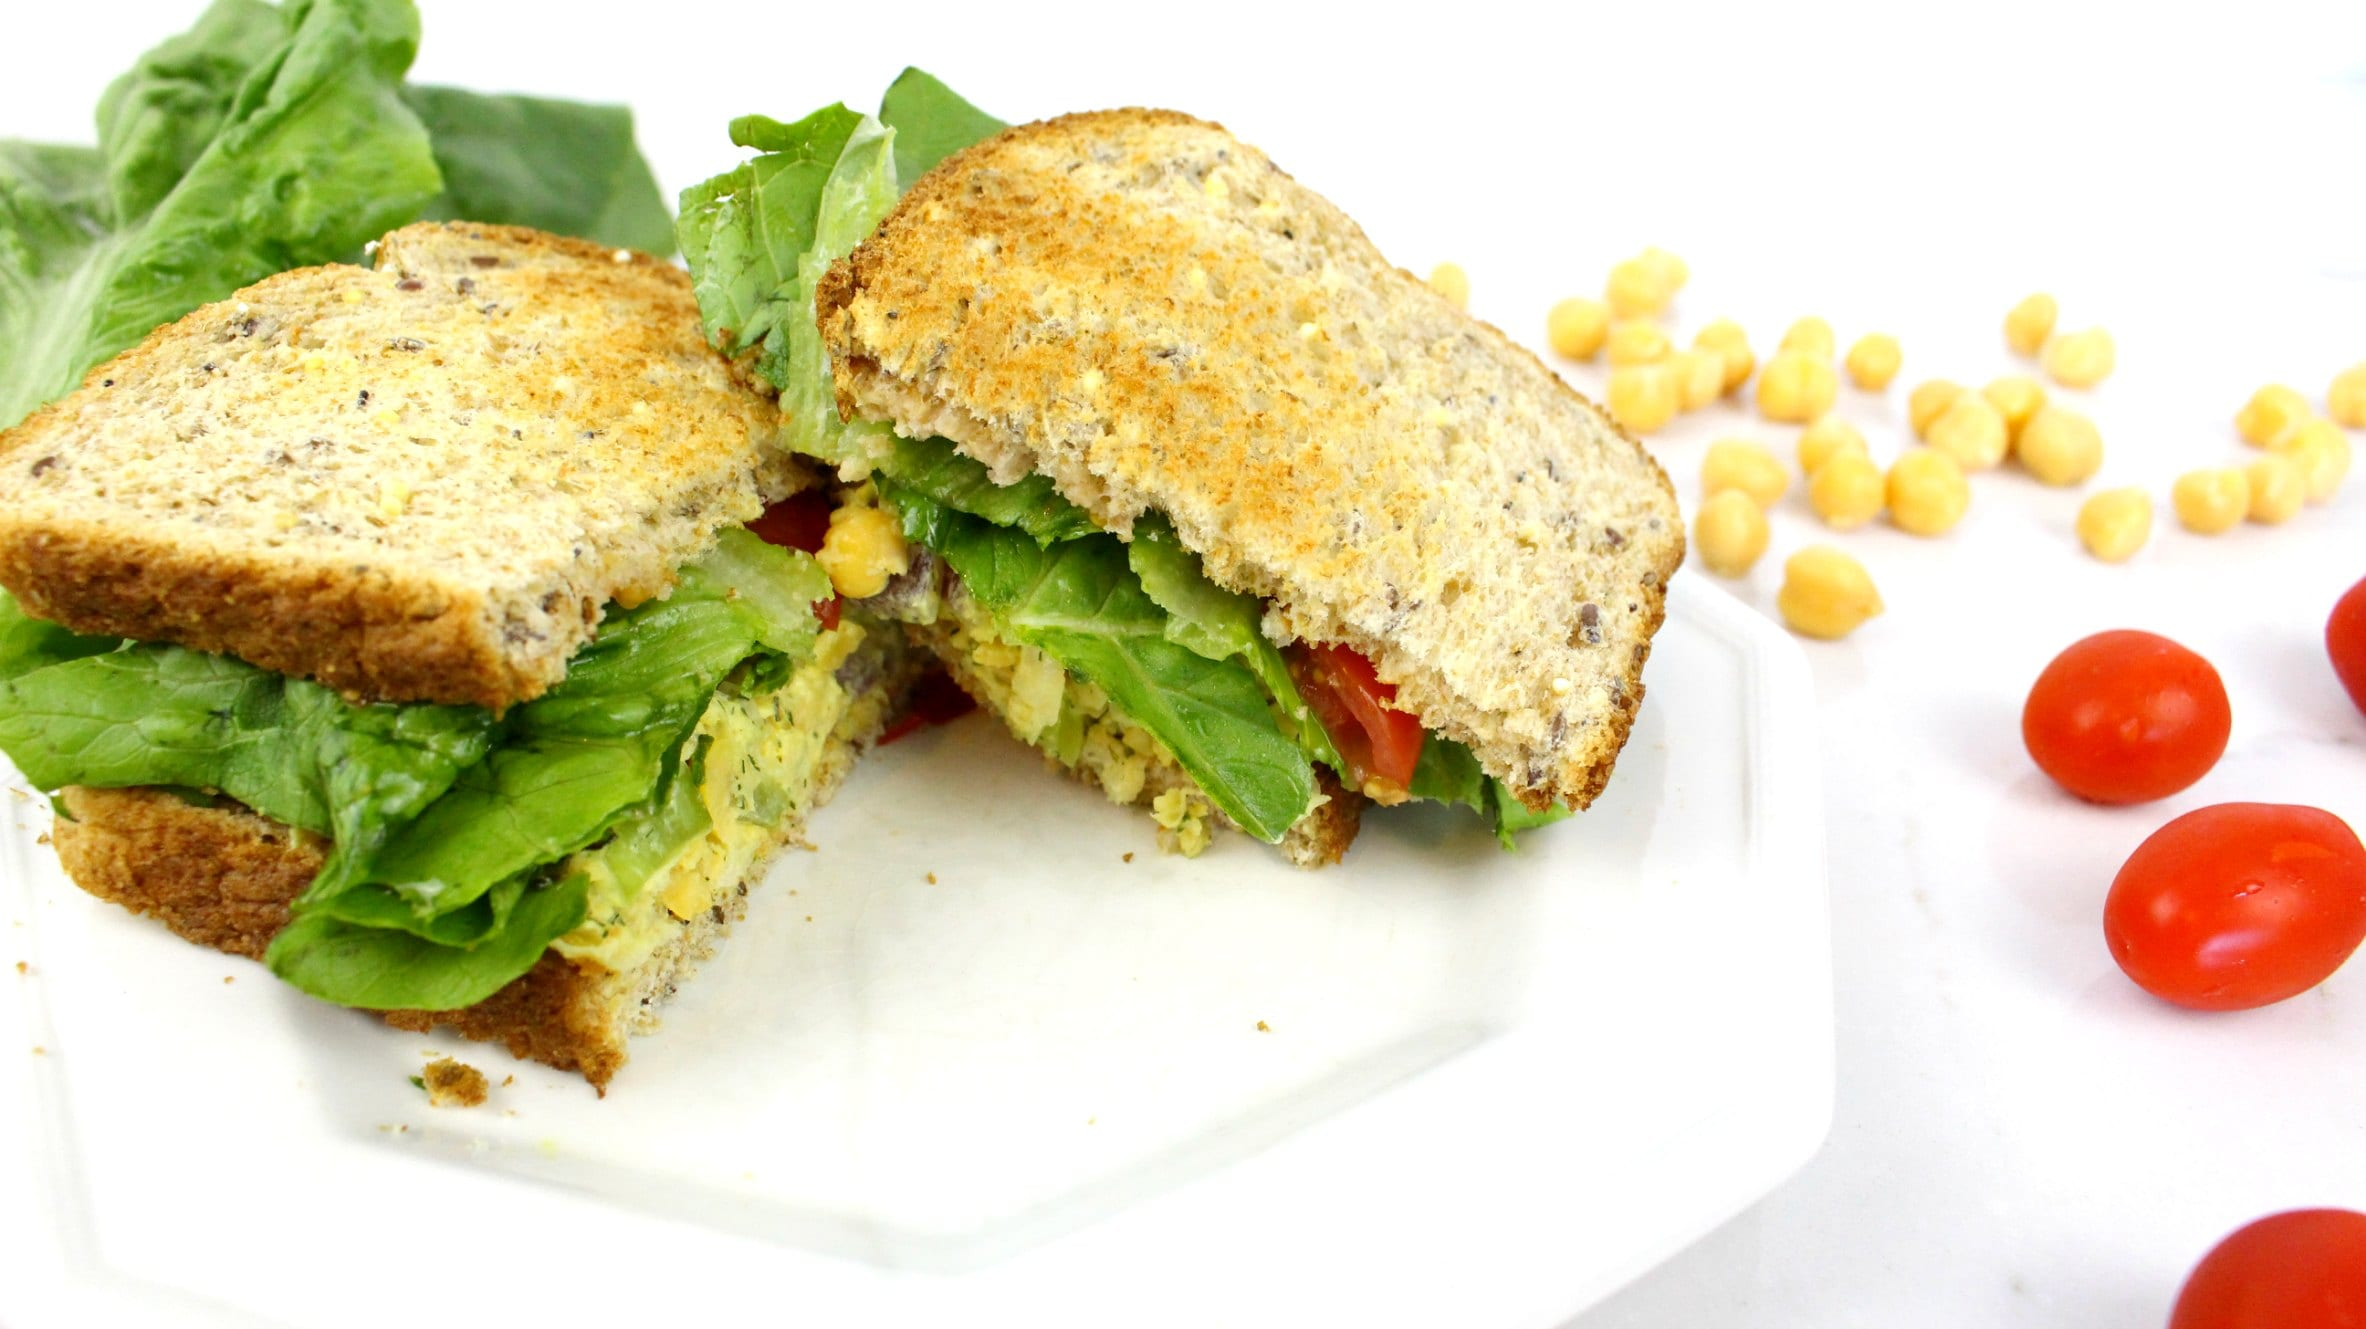 A chickpea tuna sandwich recipe that is sure to fulfill vegetarians cravings for tune. It's totally vegan and the perfect sandwich for a healthy lunch.